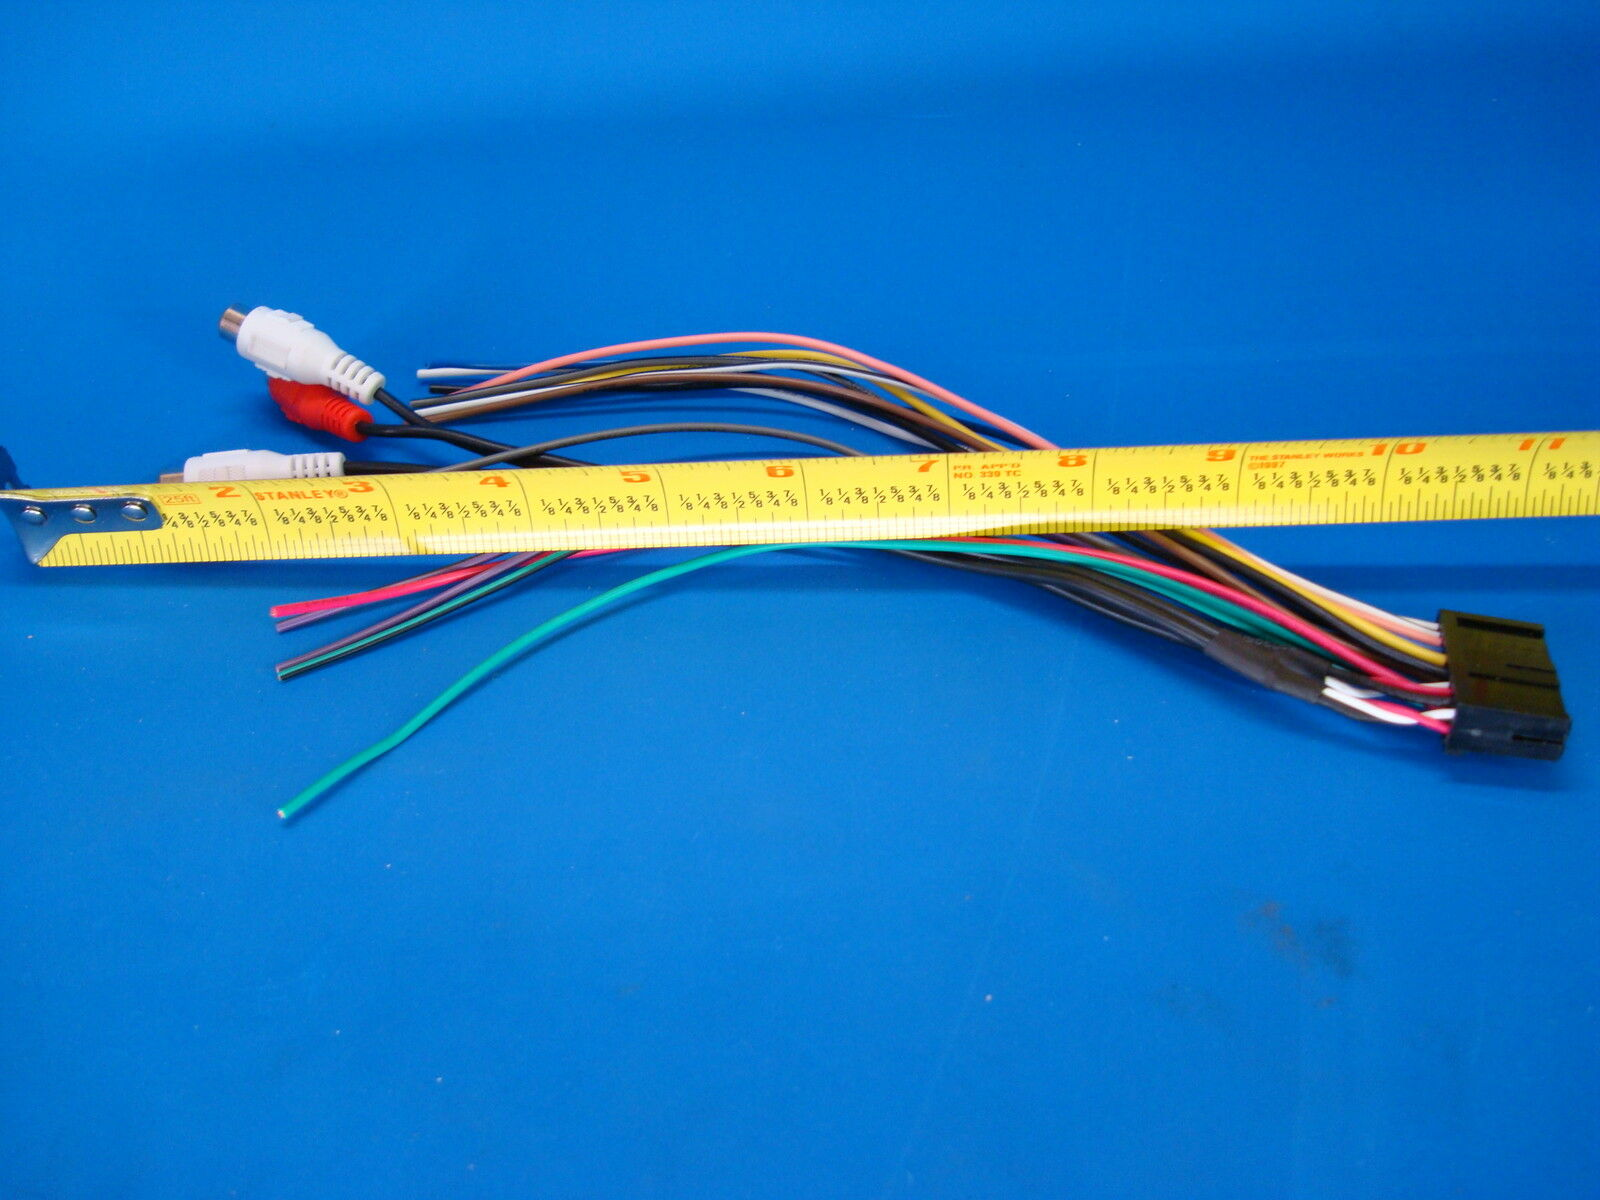 hight resolution of xo vision 20 pin radio wire harness stereo power plug back clip xod1752bt for sale